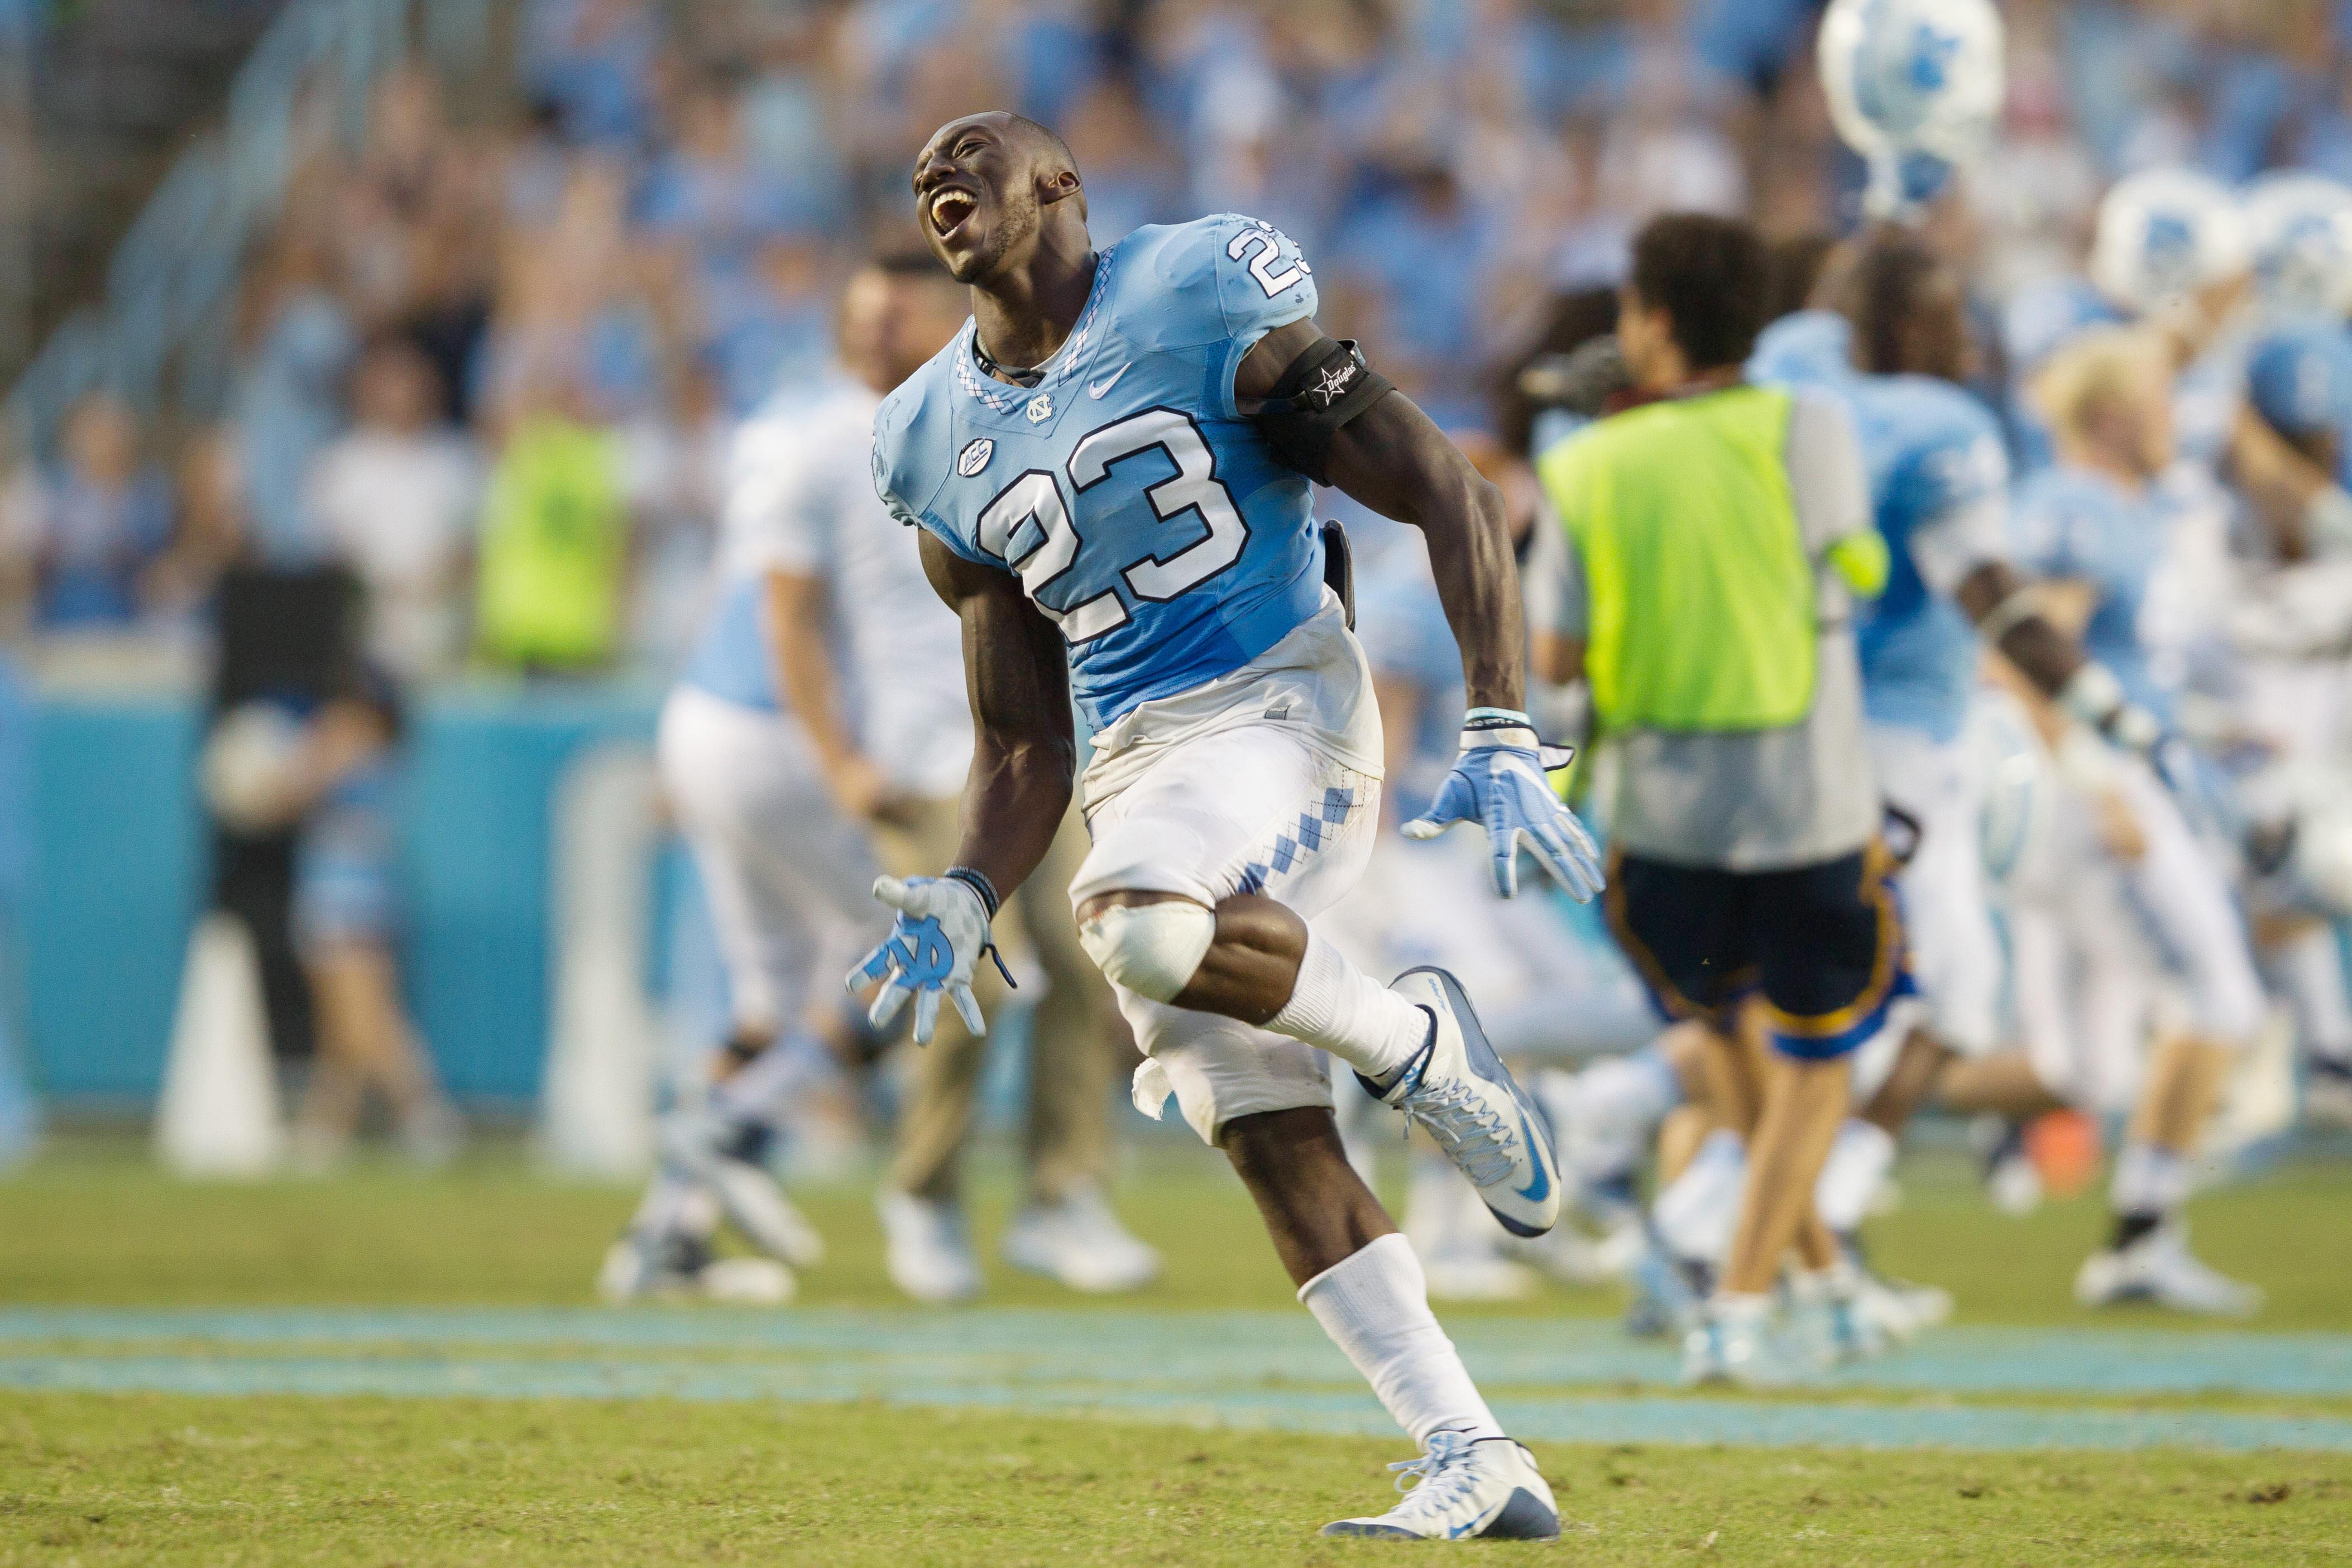 Top UNC Football players for 2017: No. 17 Cayson Collins